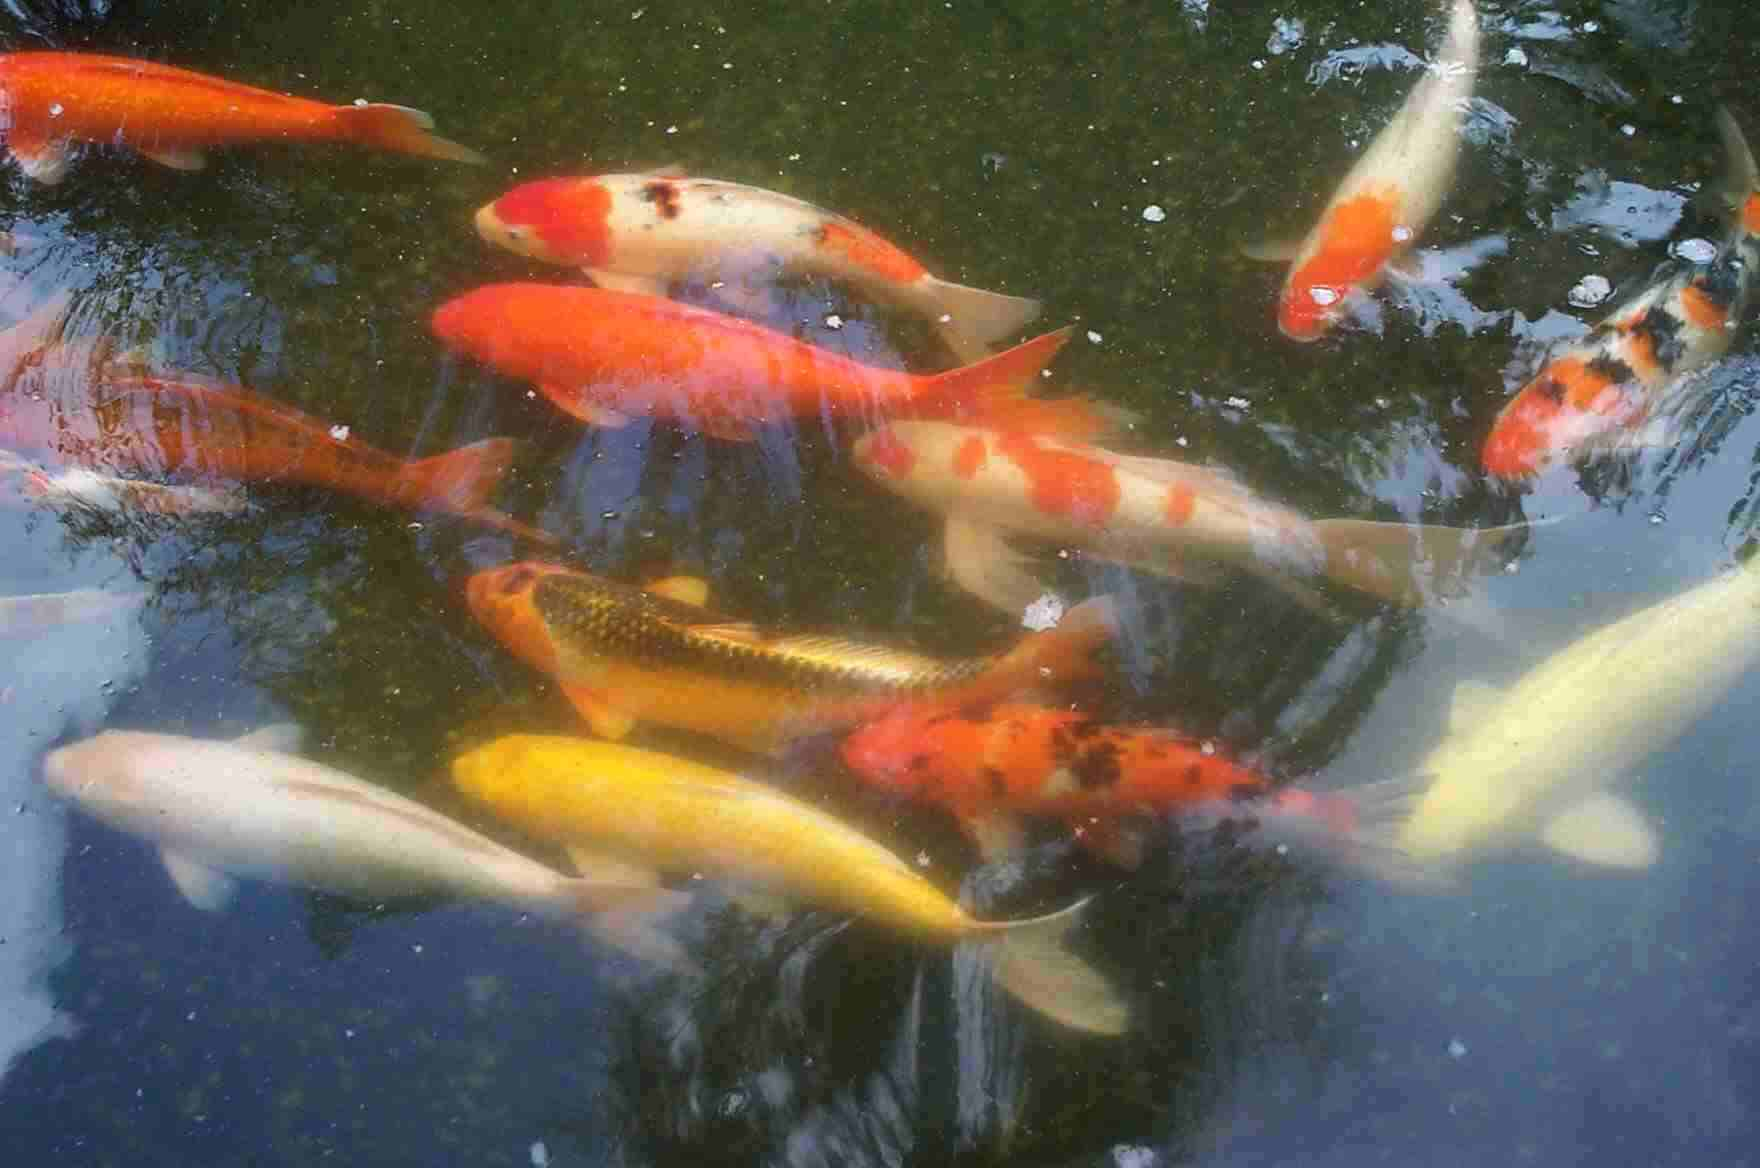 Discus fish for sale 8 amazing giant koi fish for sale for Amazing koi fish